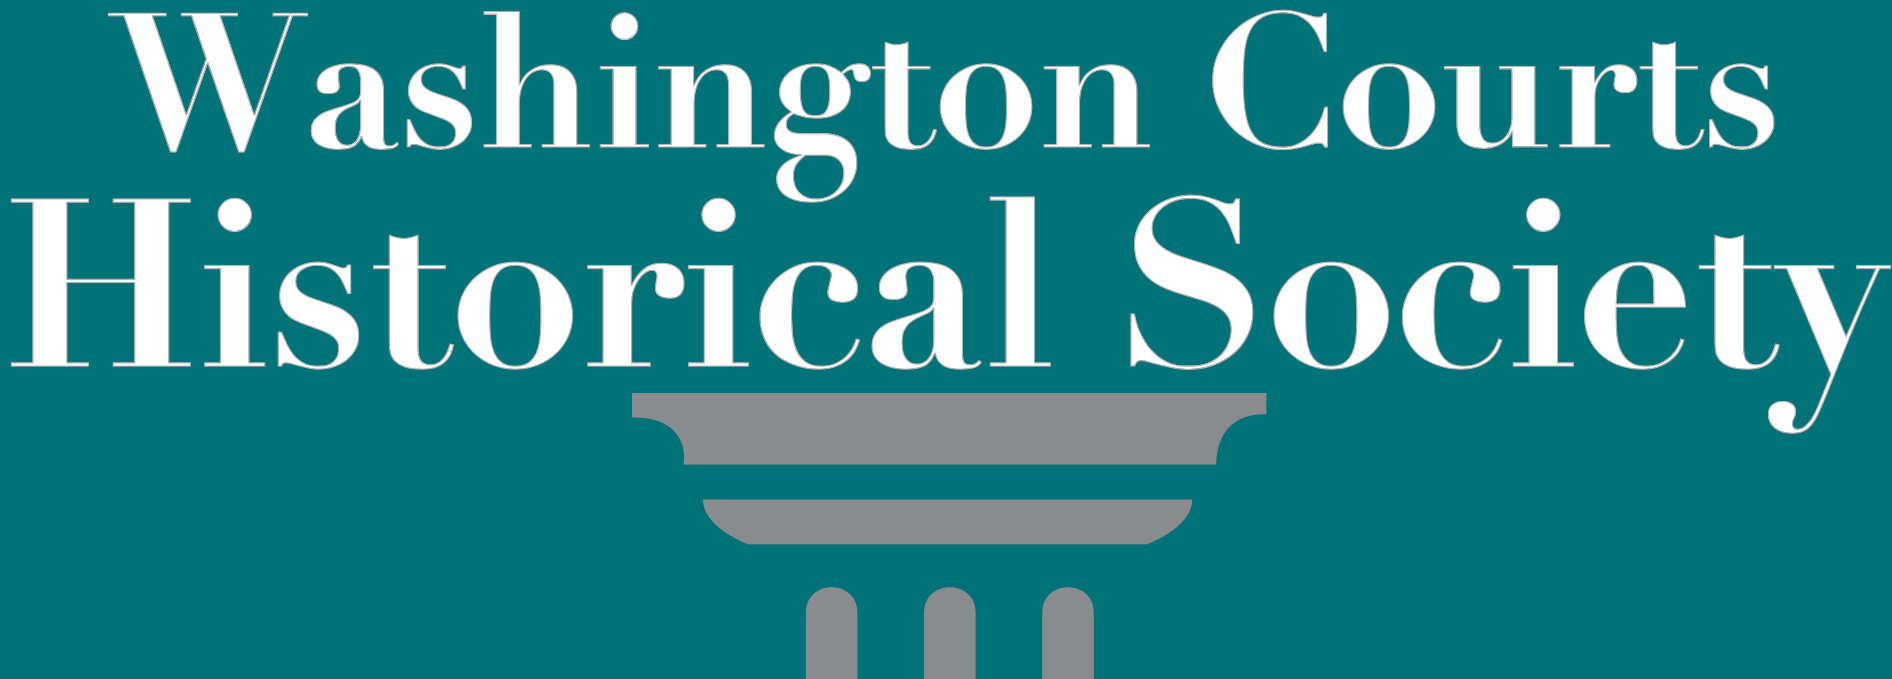 Washington Courts Historical Society